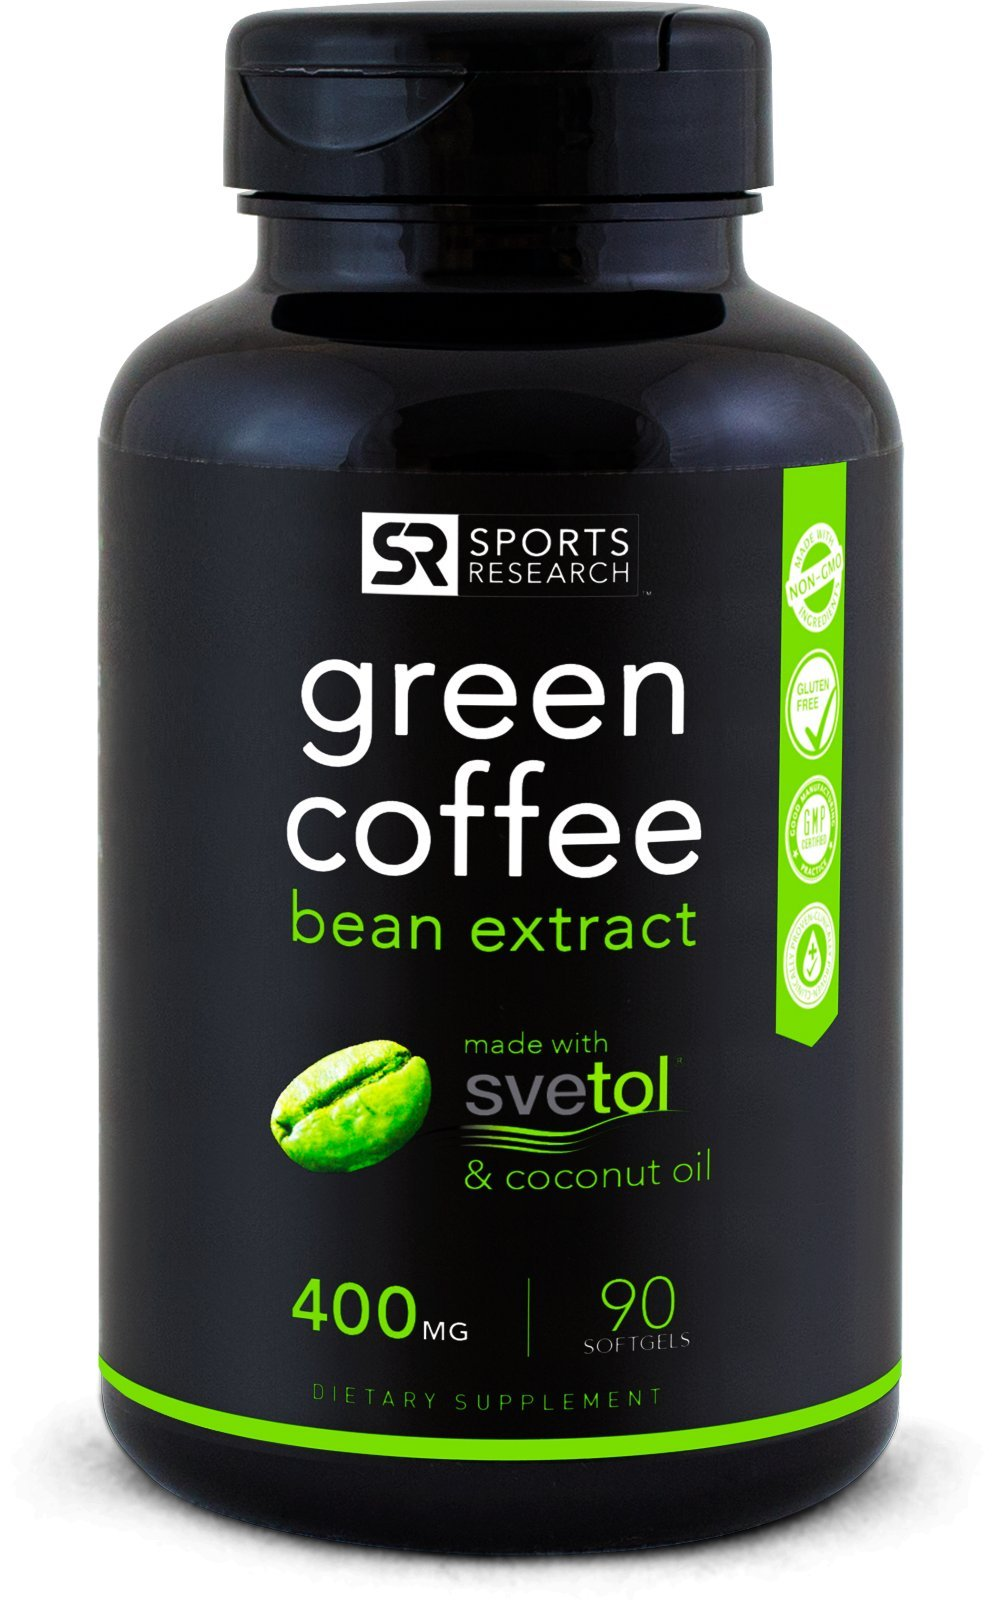 SVETOL Green Coffee Bean Extract, 90 Liquid Softgels with 400mg of Clinically-Proven Svetol Per Cap by Sports Research